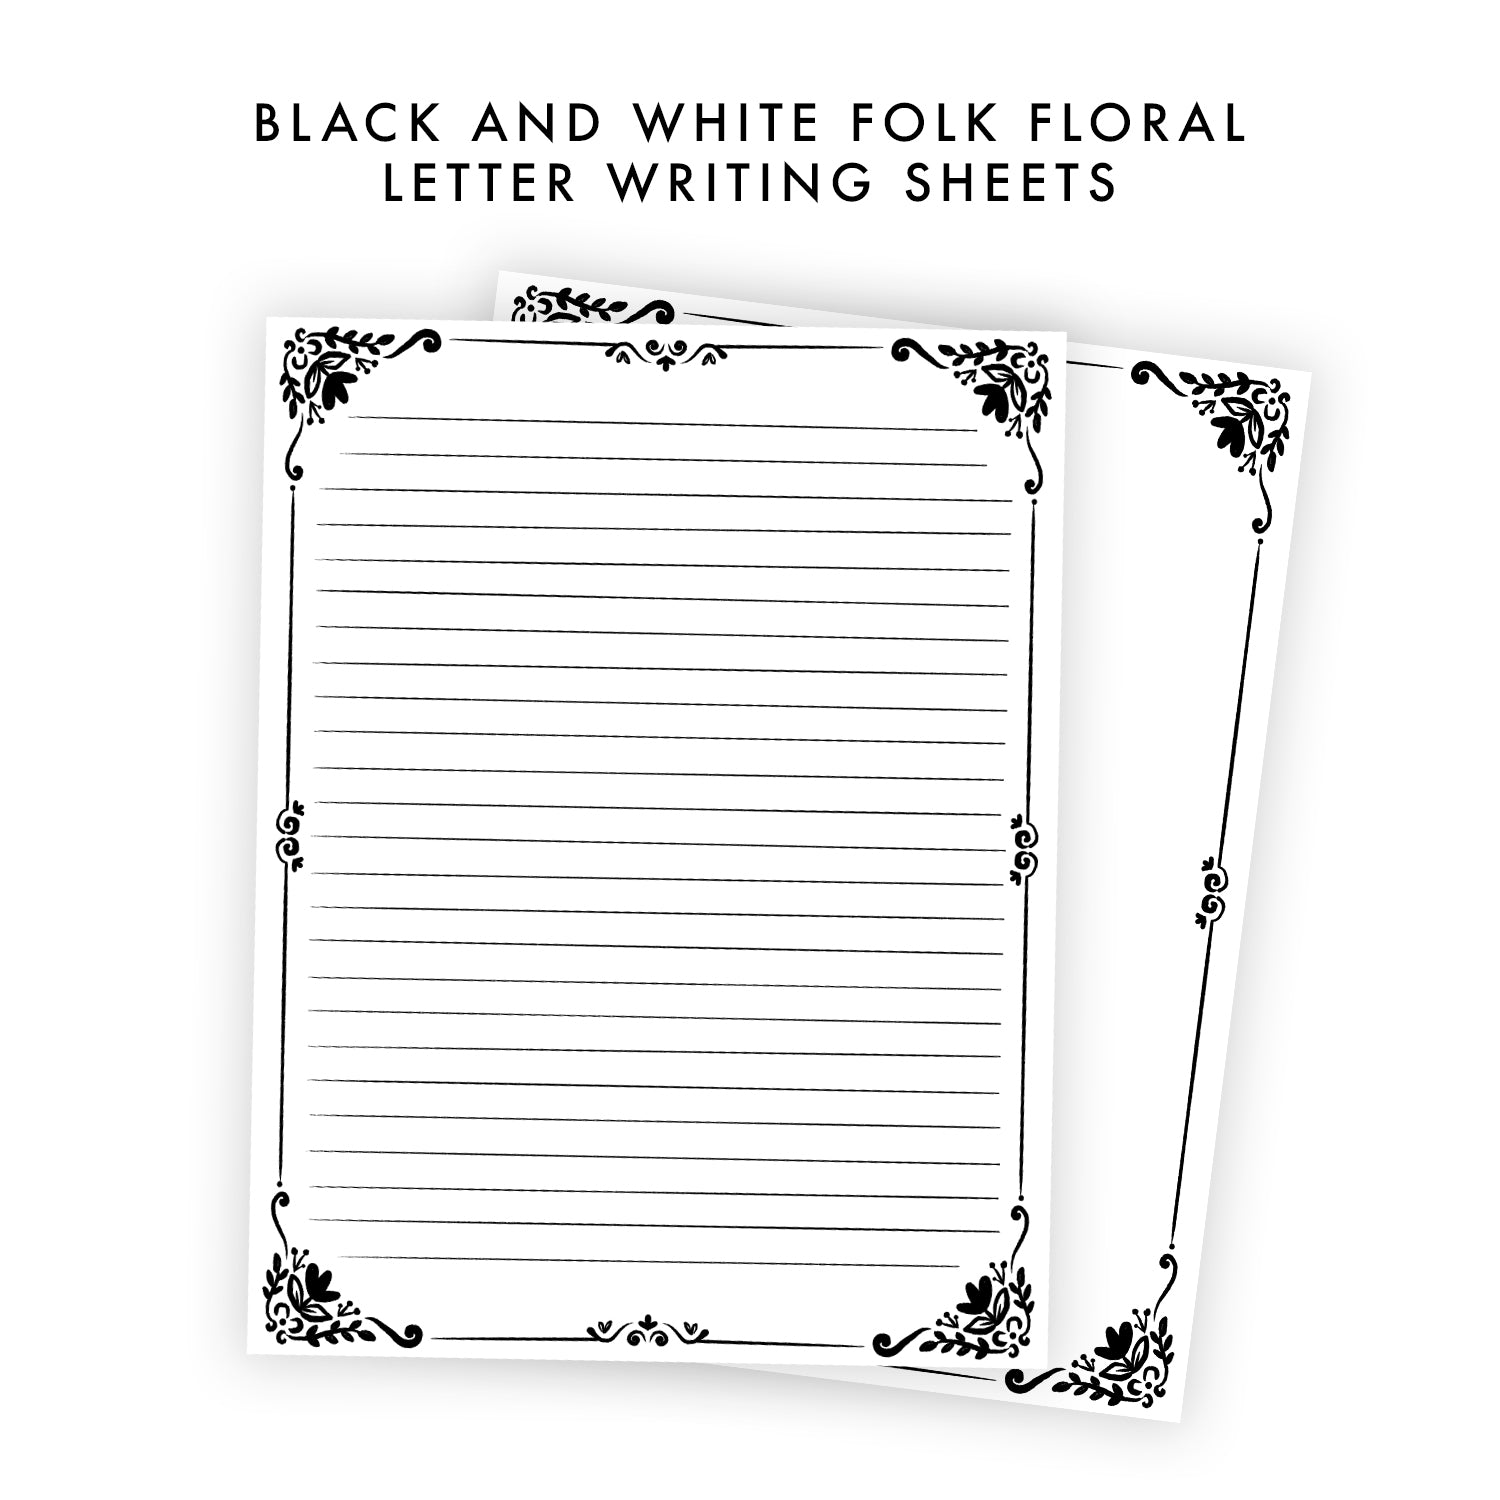 Printable Letter Writing Sheets - Folk Floral